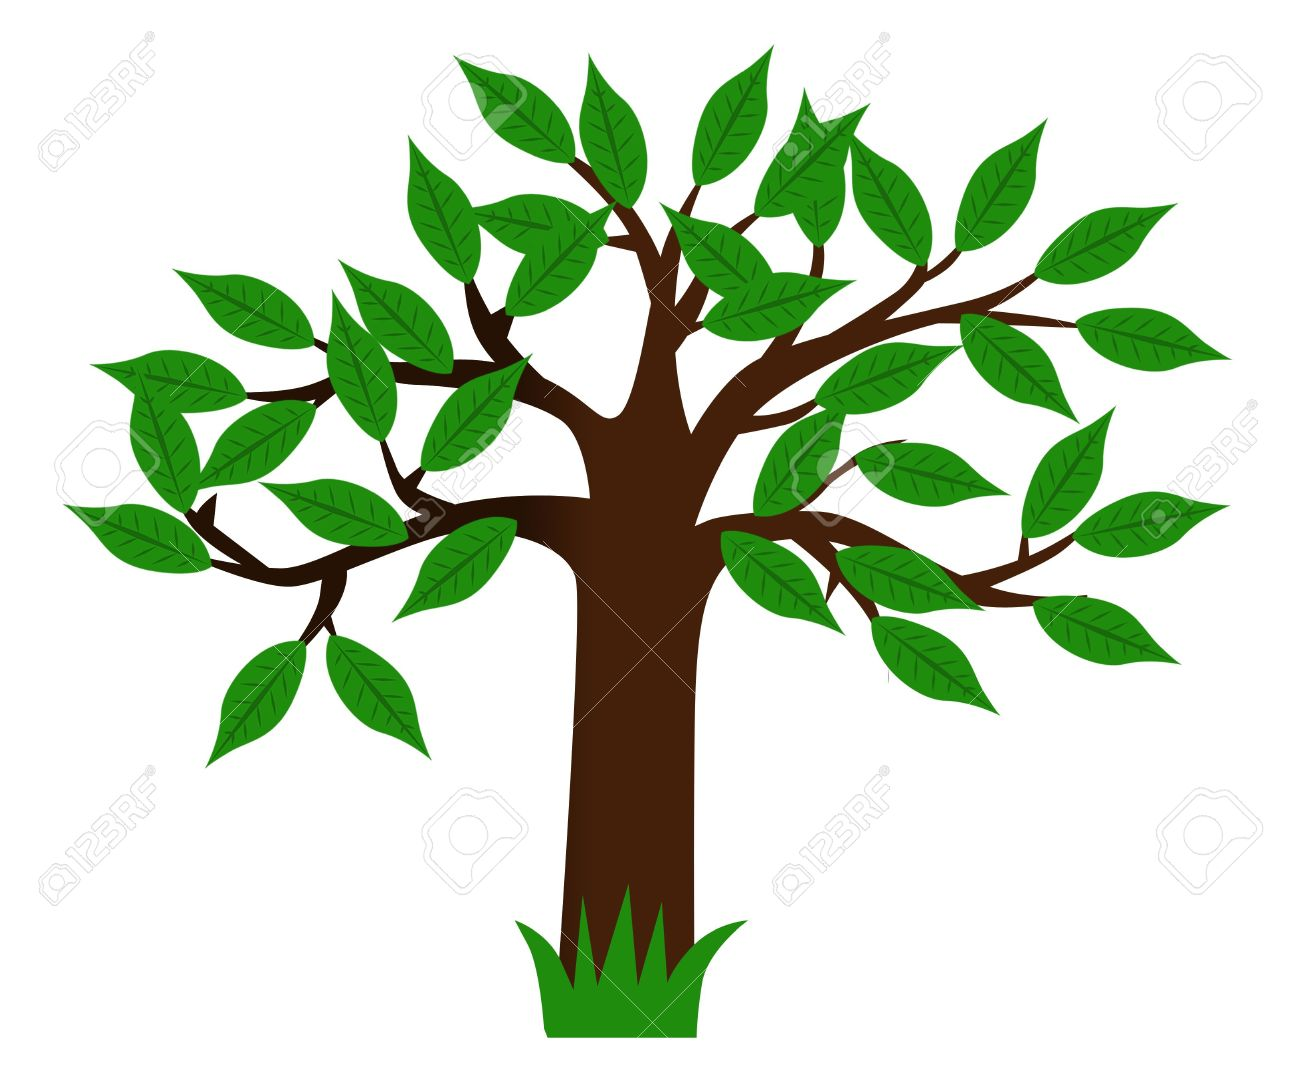 1300x1085 Drawing Green Tree With Leaves Stock Photo, Picture And Royalty